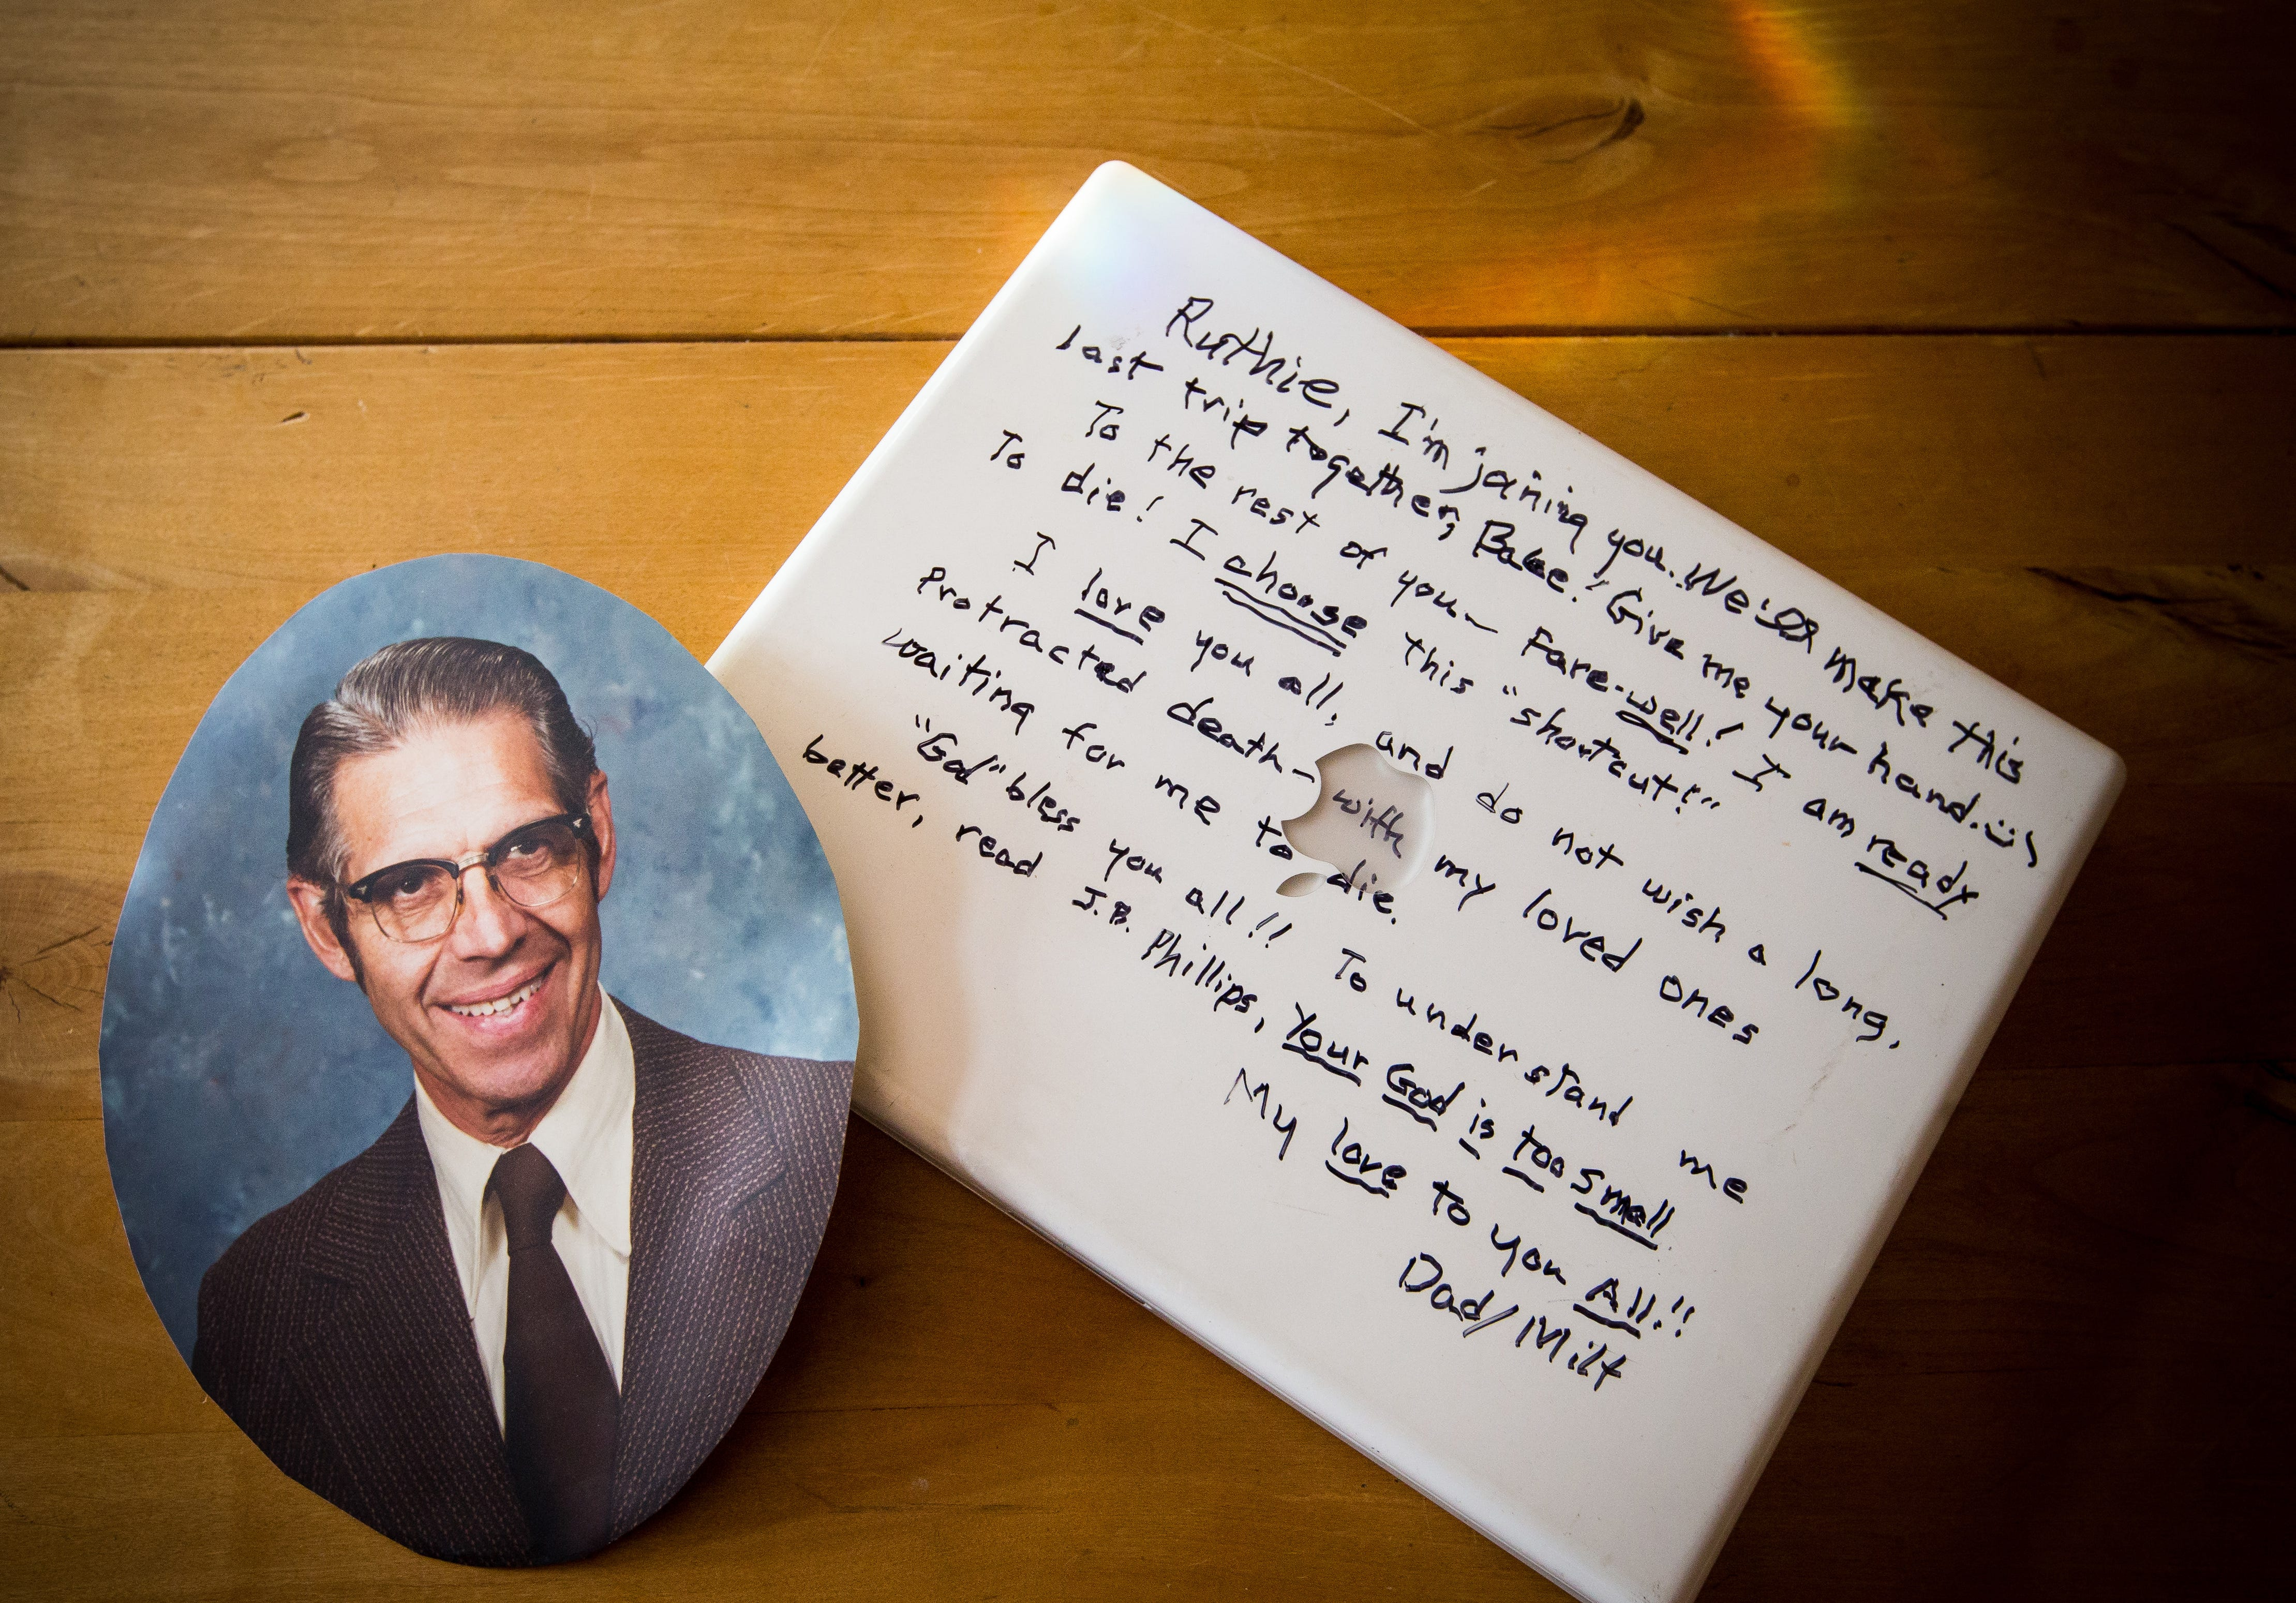 Retired Seattle minister Milt Andrews, 90, ended his life on Valentine's Day 2013 at his assisted living center, leaving behind a note written in black marker on the cover of his laptop computer.